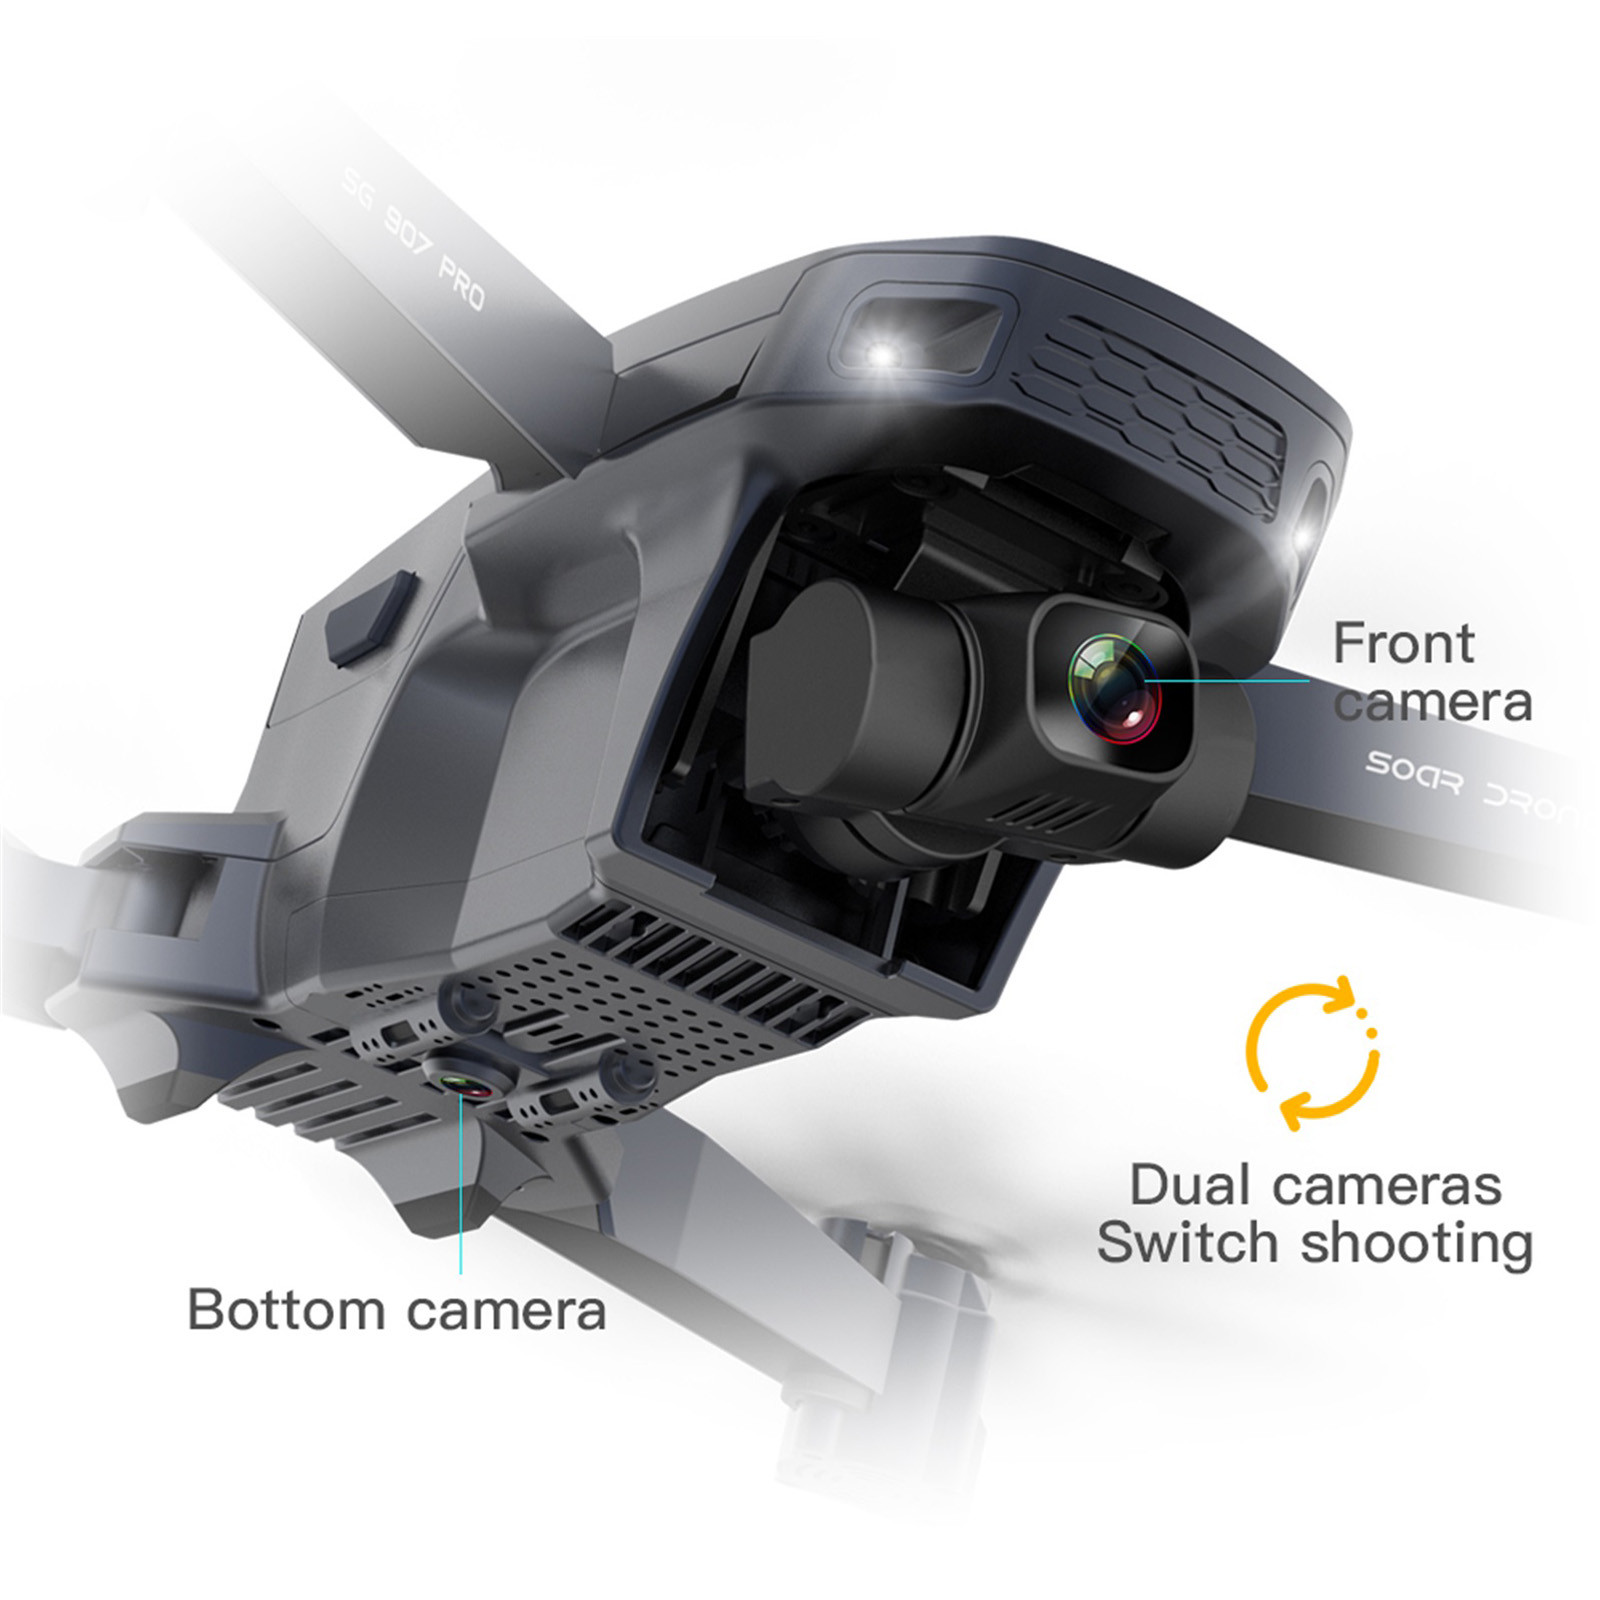 He3ef1e3bd0cb401a984a2b36768a90464 - 2020 New Sg907 Pro 5g Wifi Drone 2-axis Gimbal 4k Camera Wifi Gps Rc Drone Toy Rc Four-axis Professional Folding Camera Drones